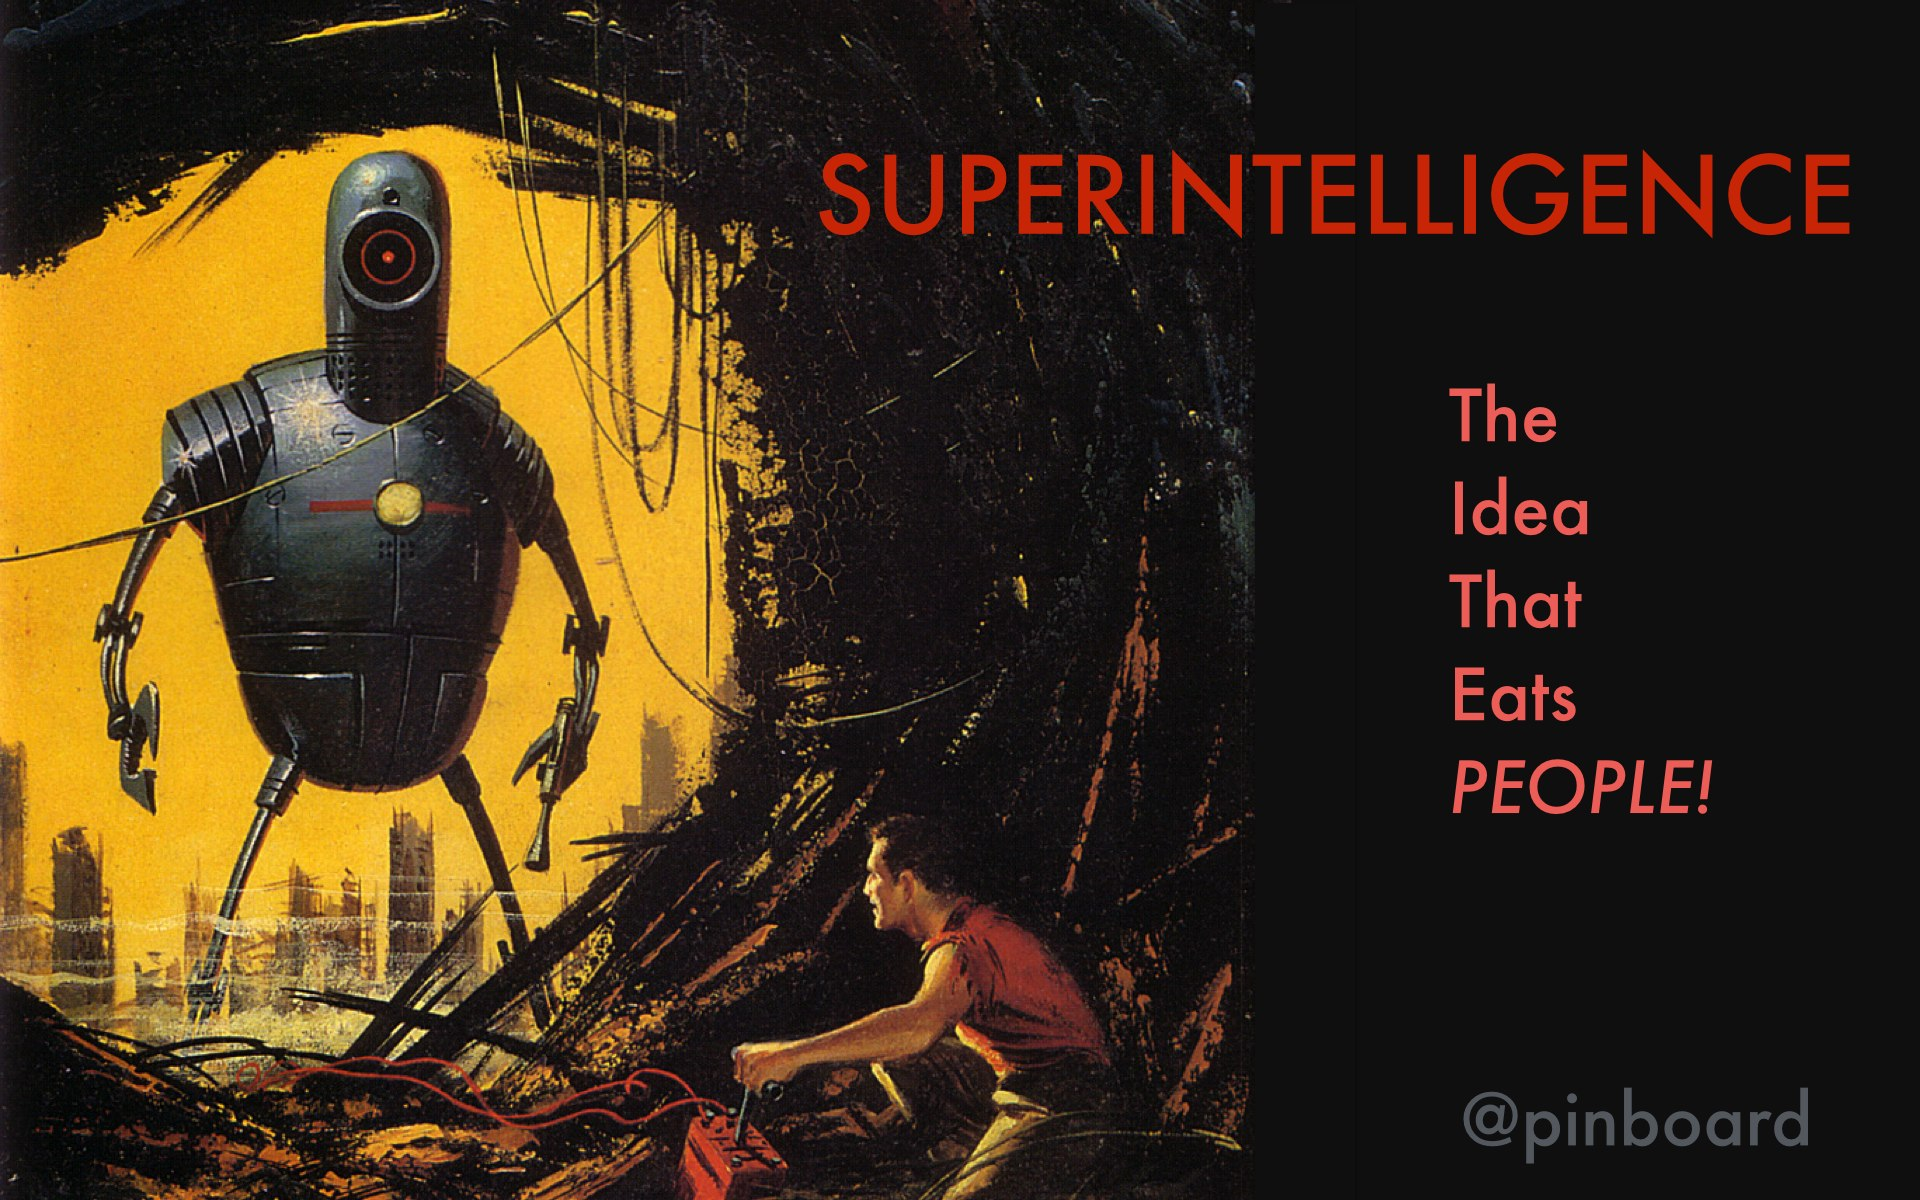 Superintelligence: an idea that wonders intelligent people